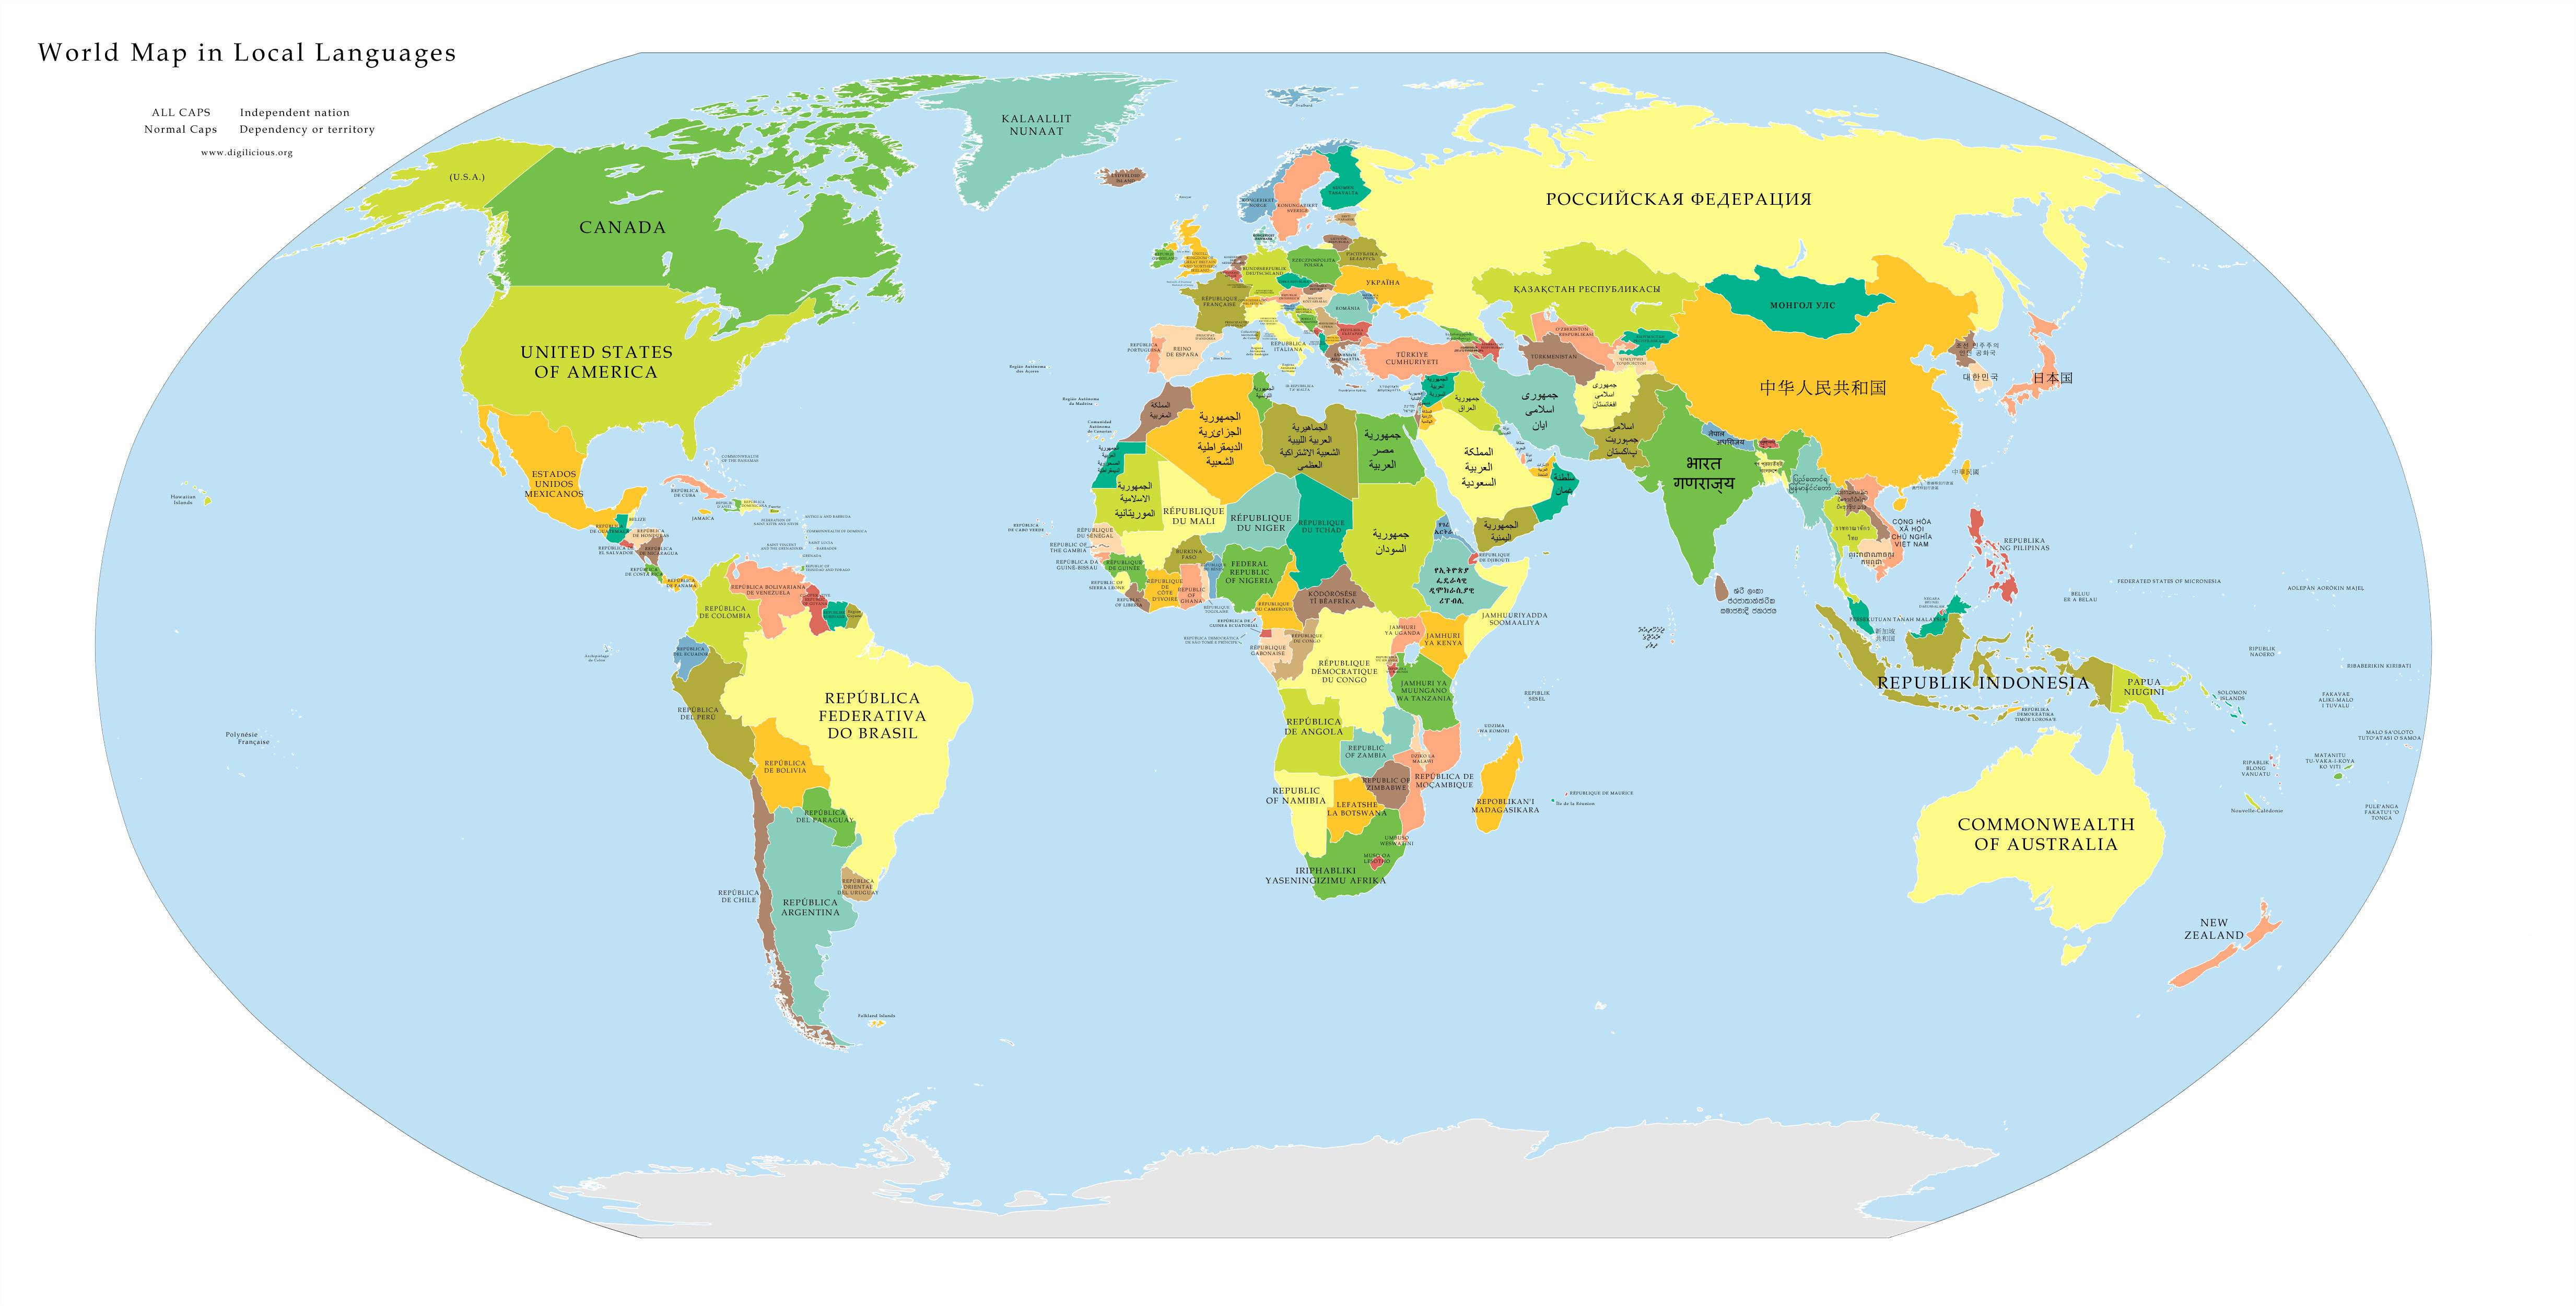 High Resolution Political Map Of The World With Countries Labeled In Their Native Language Vivid Maps